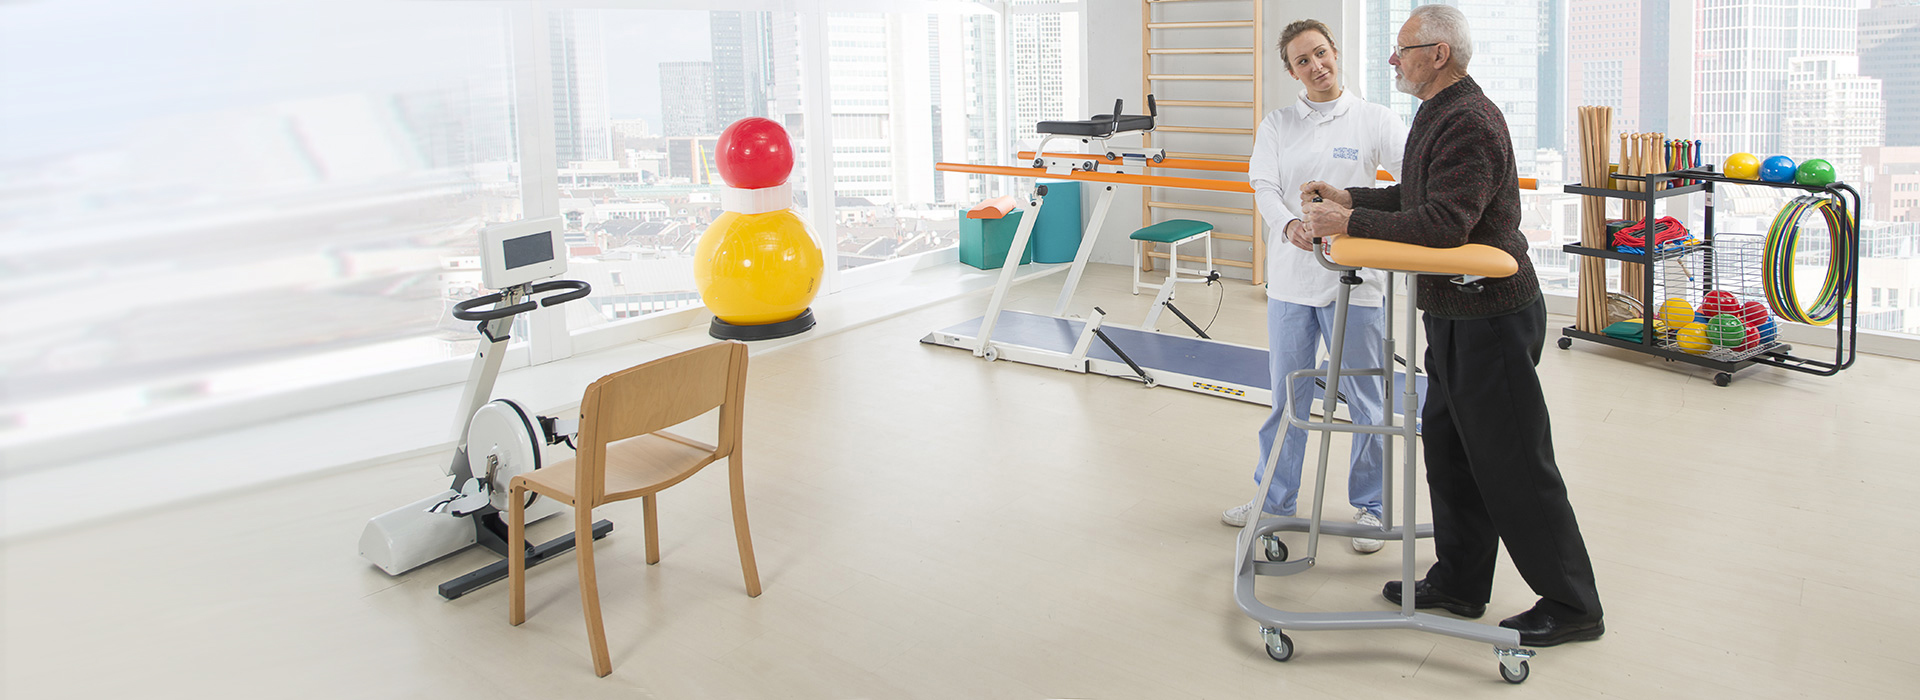 Chinesport equipment suitable for Covid-19 patients rehabilitation programs